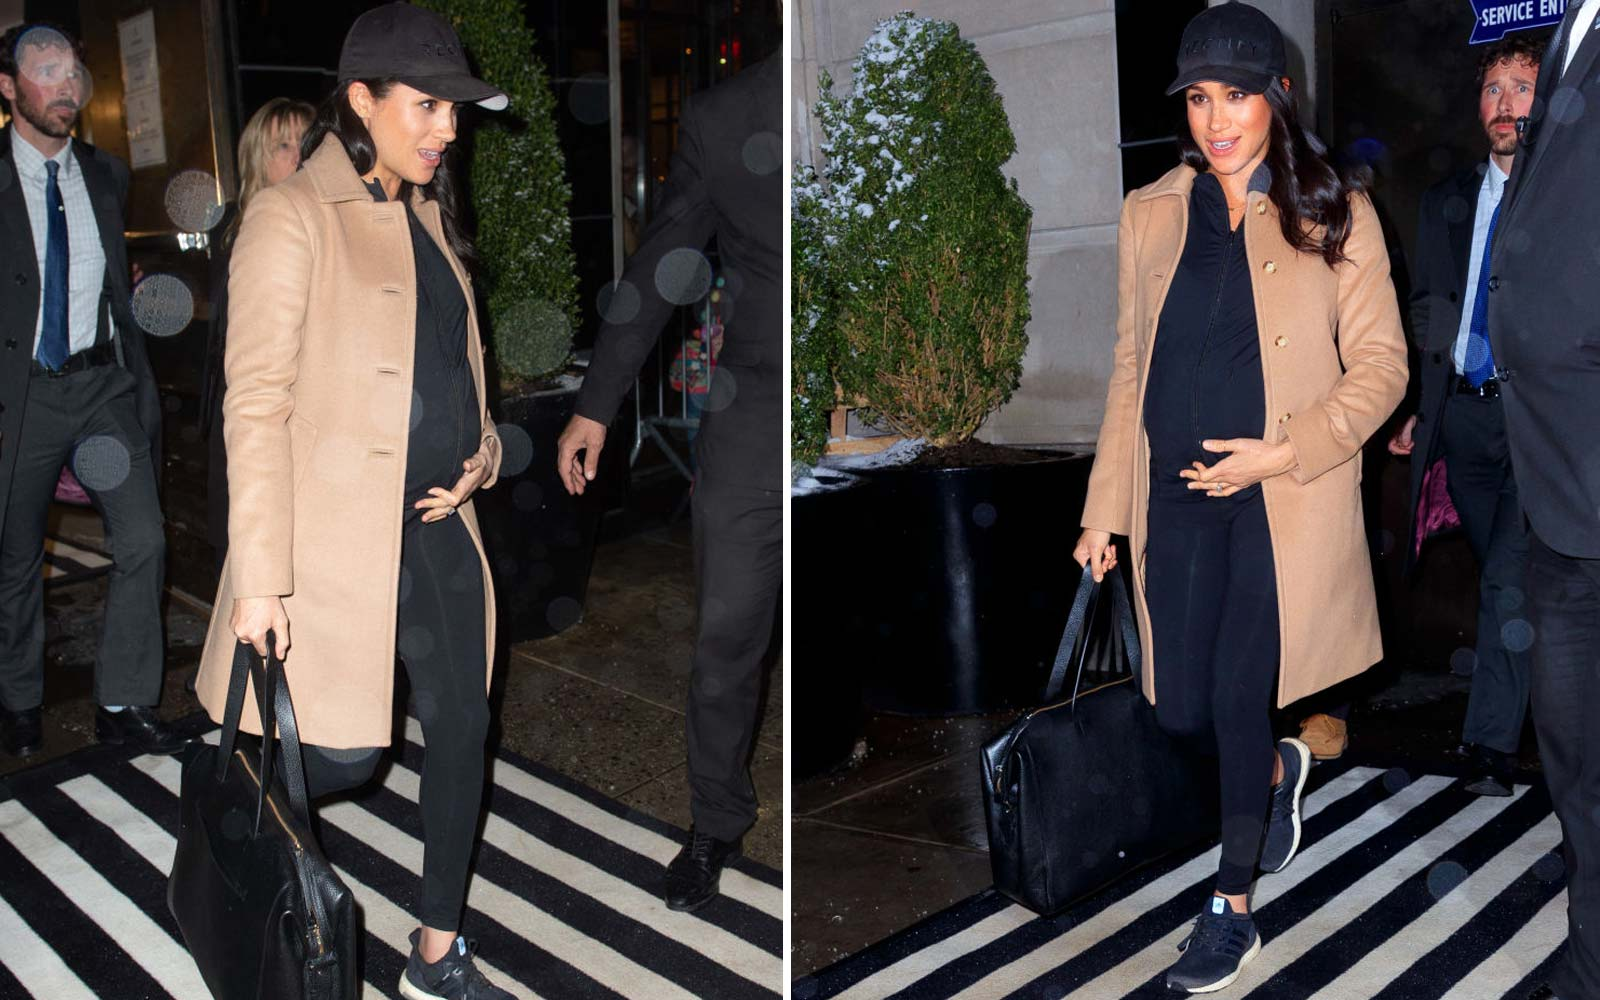 Meghan Markle attending her own baby shower in NYC